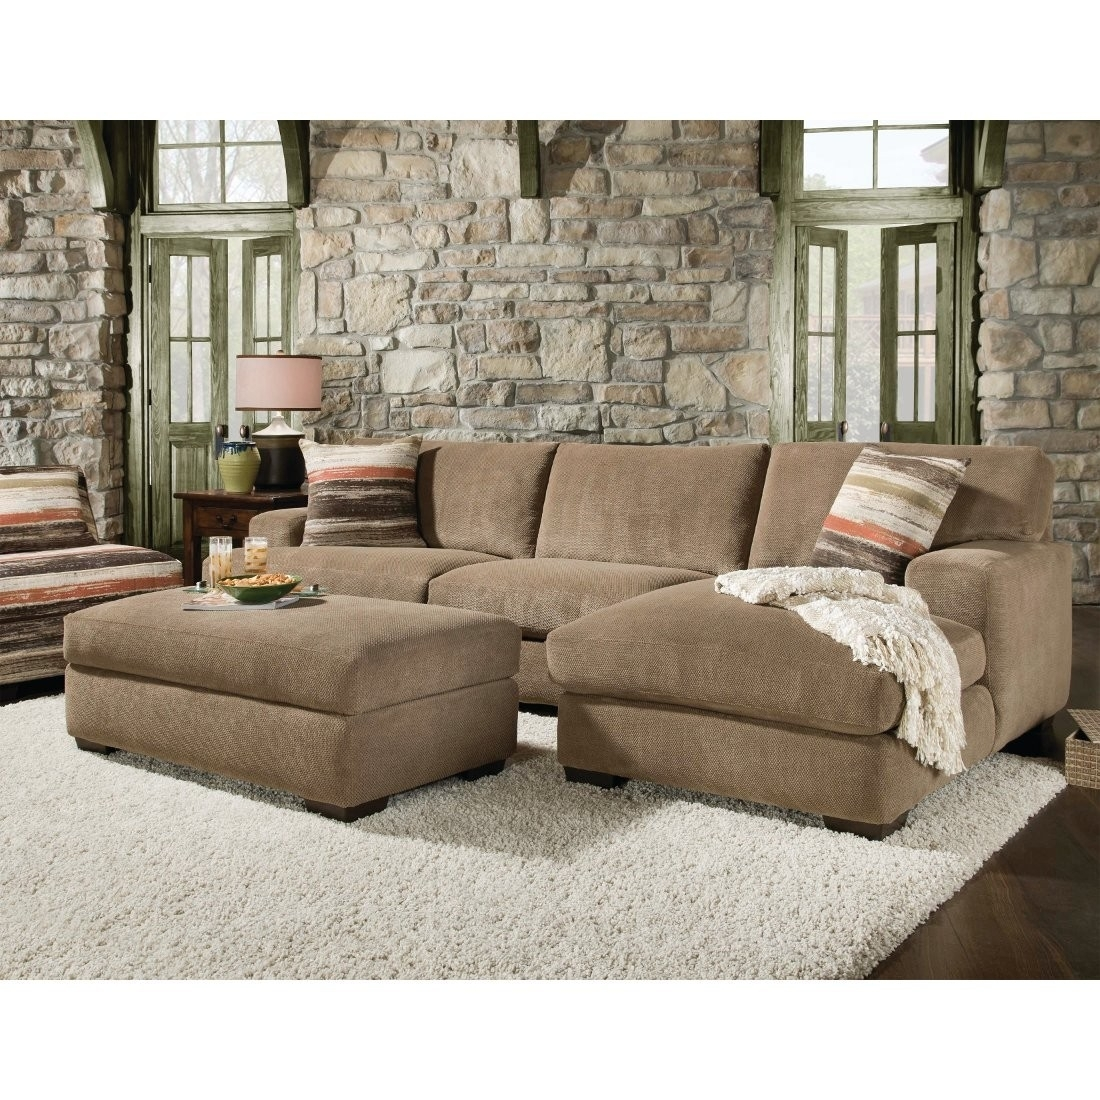 Beautiful Sectional Sofa With Chaise And Ottoman Pictures Inside Sectionals With Chaise And Ottoman (Image 1 of 10)